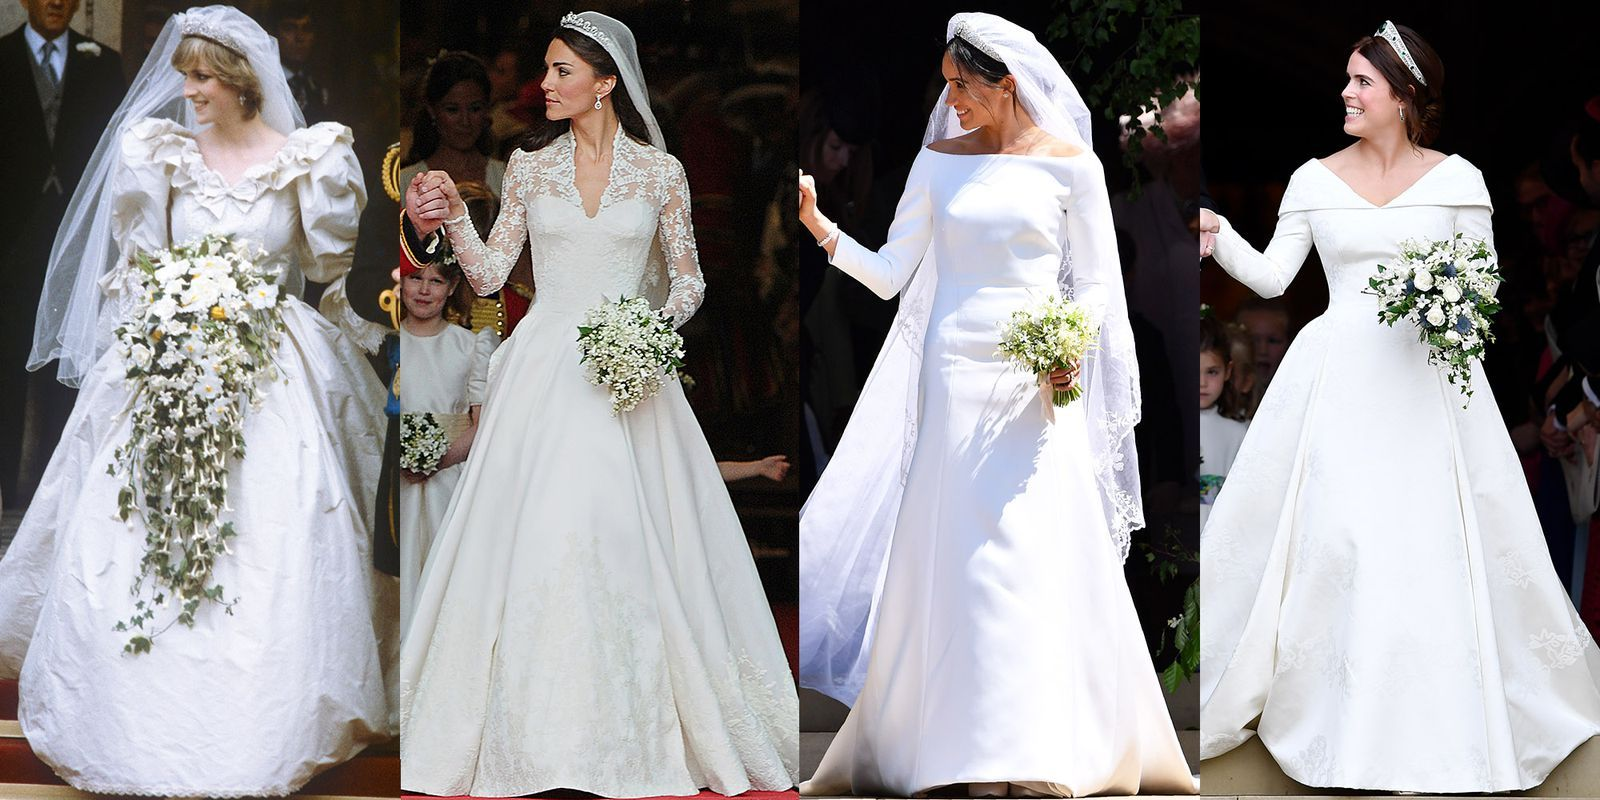 how princess eugenie s wedding dress compares to meghan markle kate middleton and princess diana s gowns princess kate wedding dress meghan markle wedding dress kate wedding dress meghan markle wedding dress